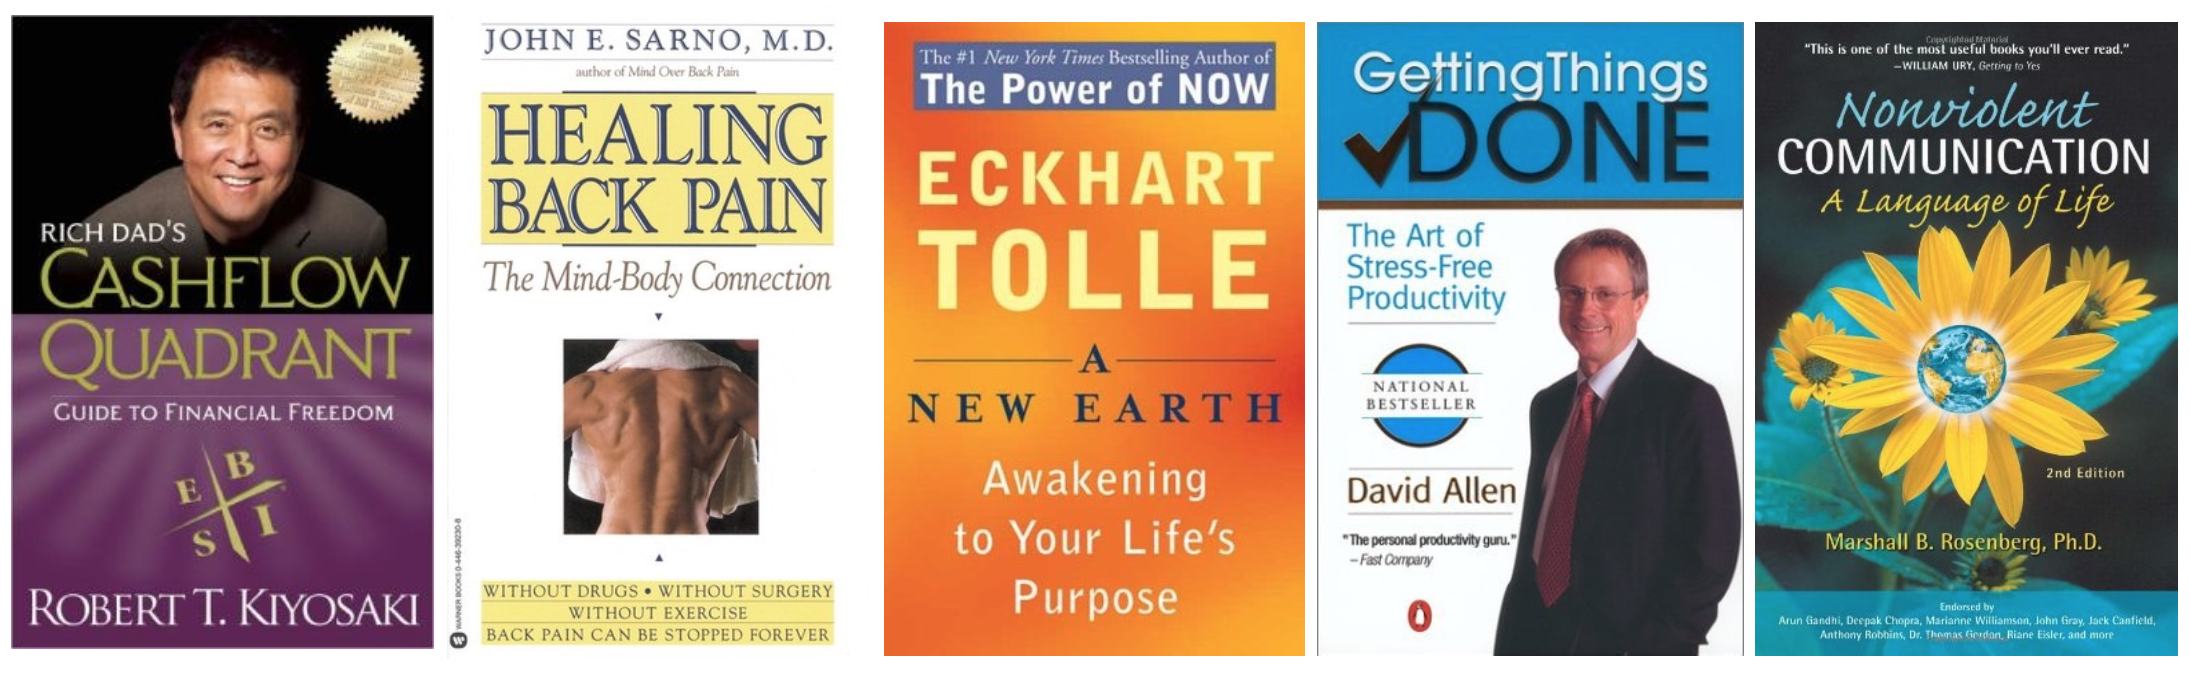 Finances, health, consciousness, organization and compassion: my top 5.